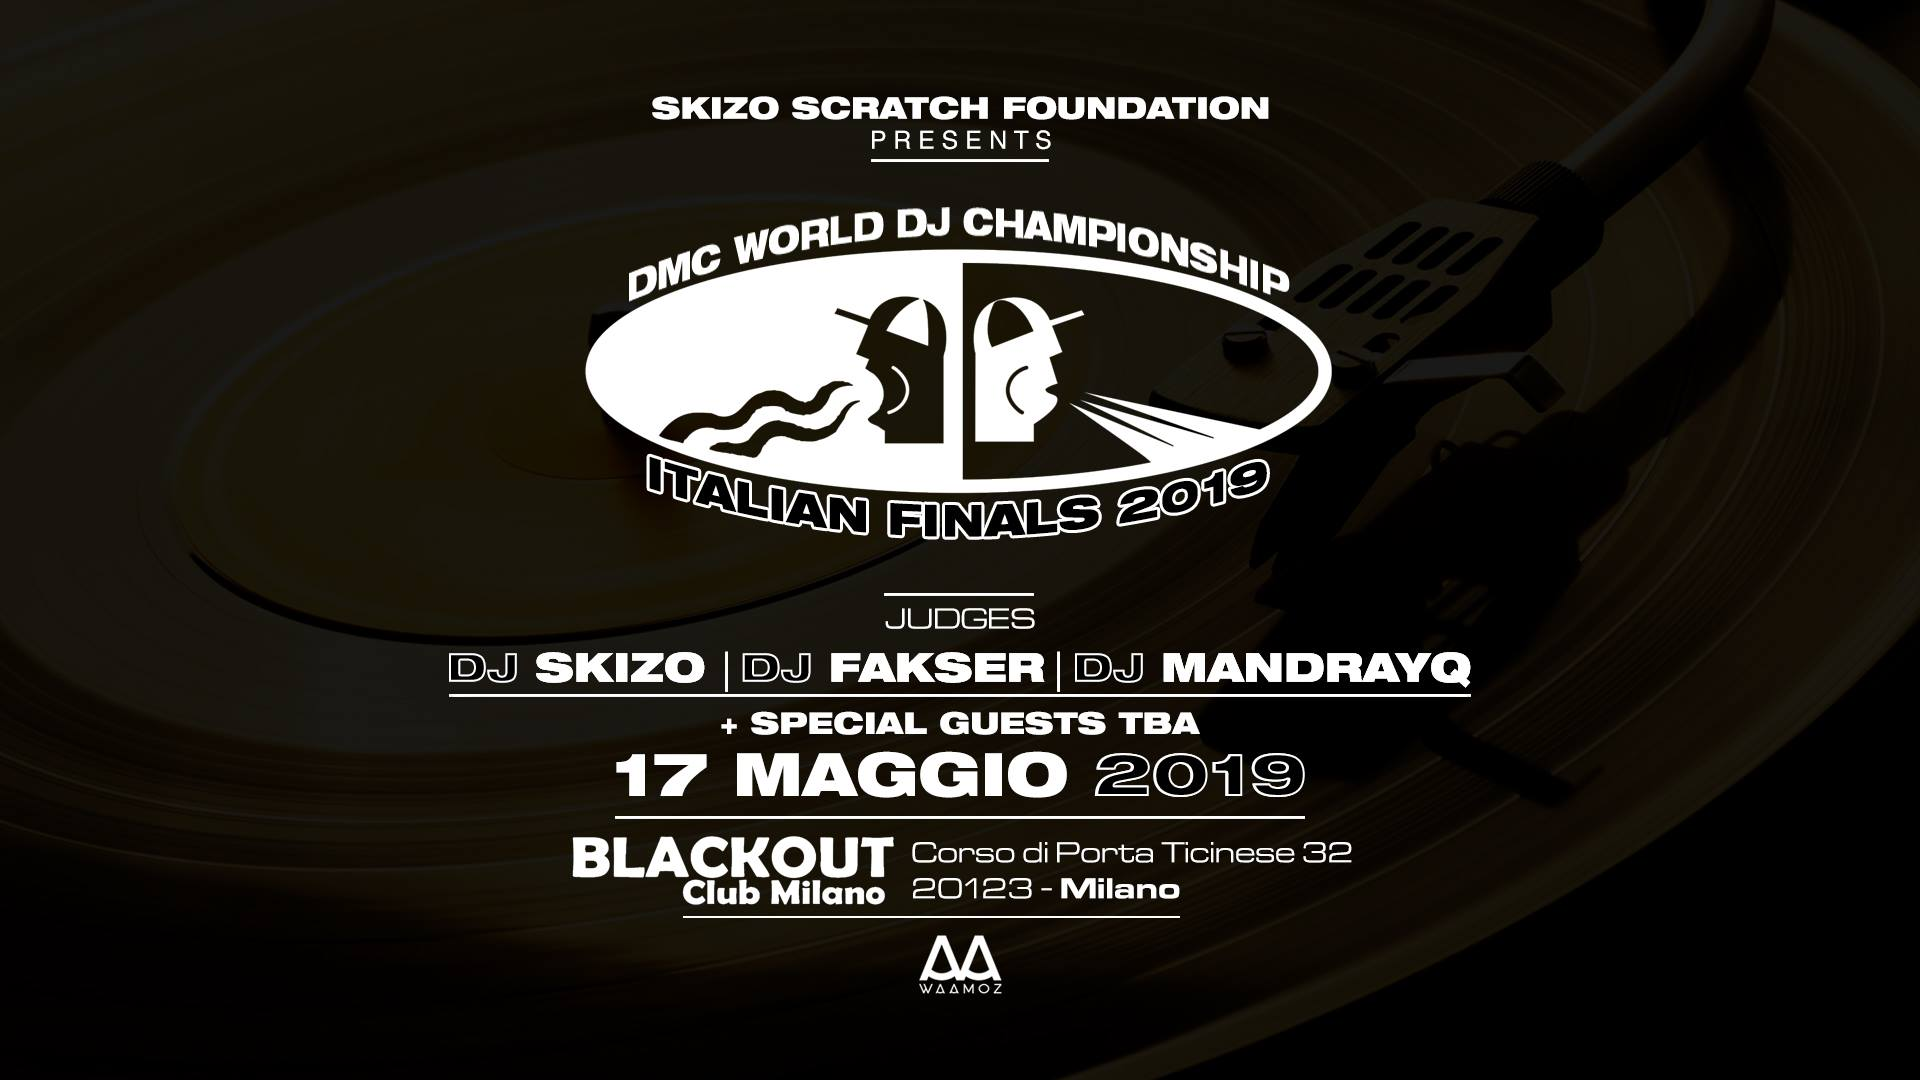 DMC WORLD DJ CHAMPIONSHIP – ITALIANS FINAL 2019